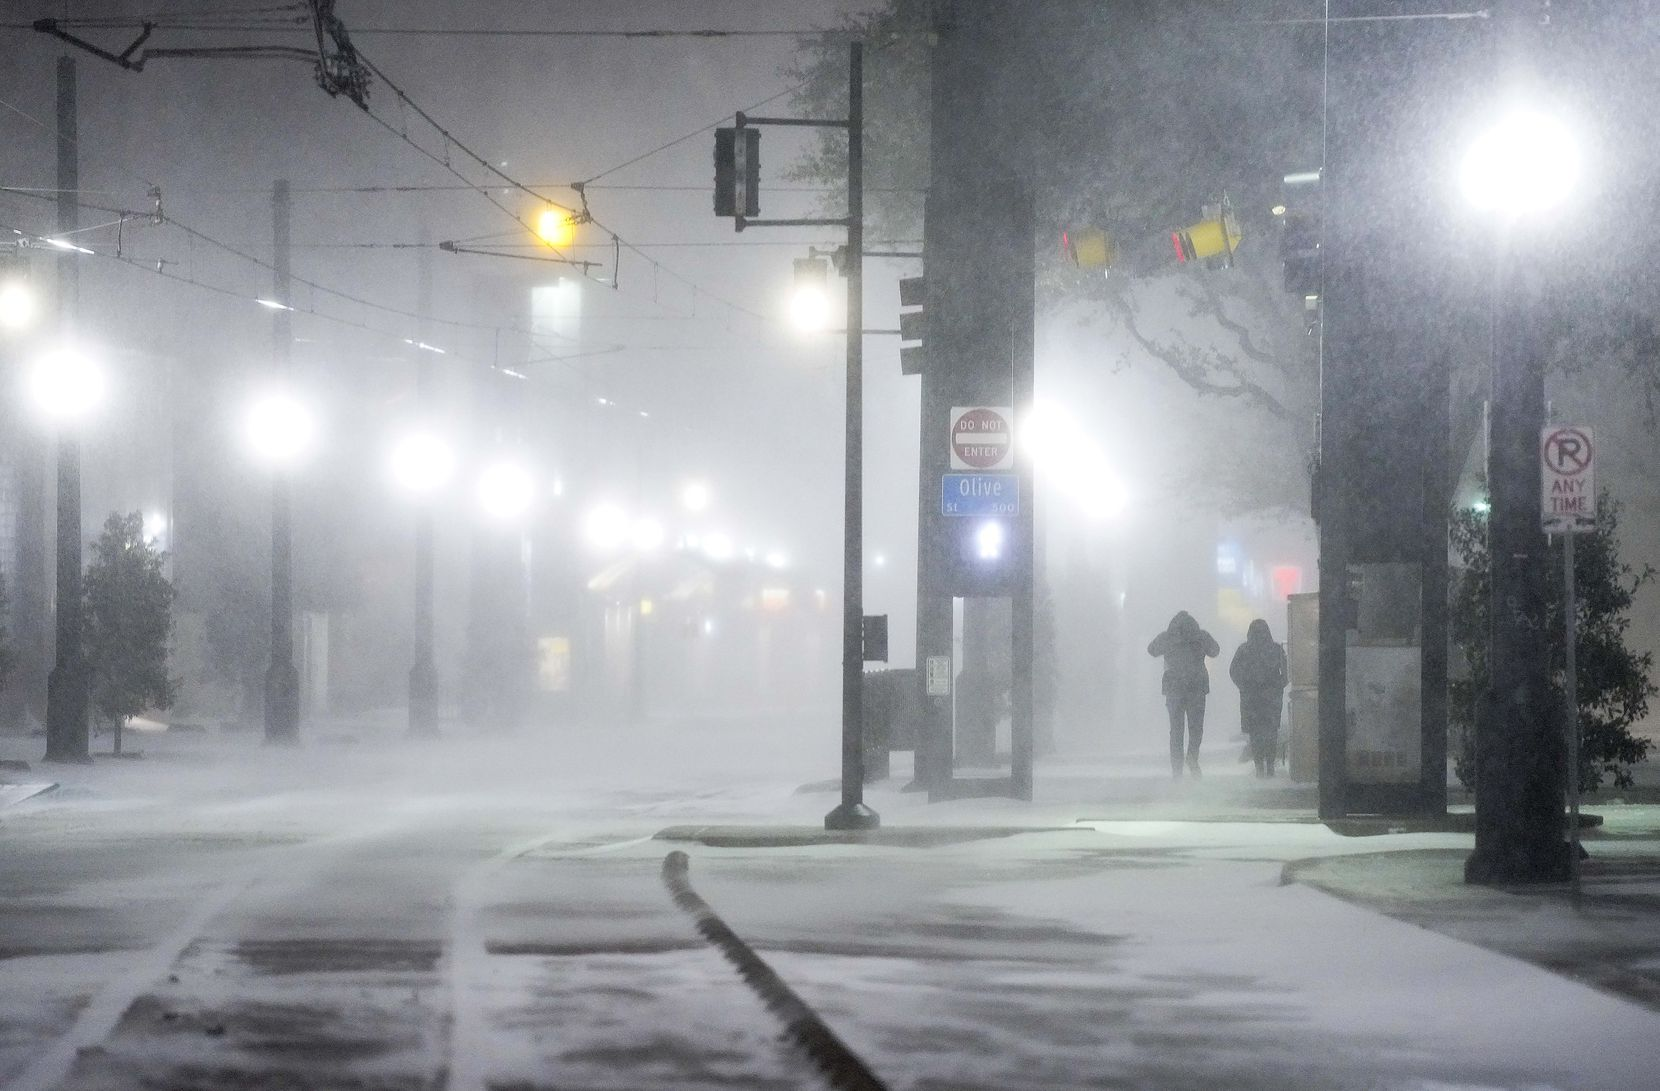 Blowing snow obscures people walking along Bryan Streen near the Pearl/Arts District station as a winter storm brings snow and freezing temperatures to North Texas on Sunday, Feb. 14, 2021, in Dallas.